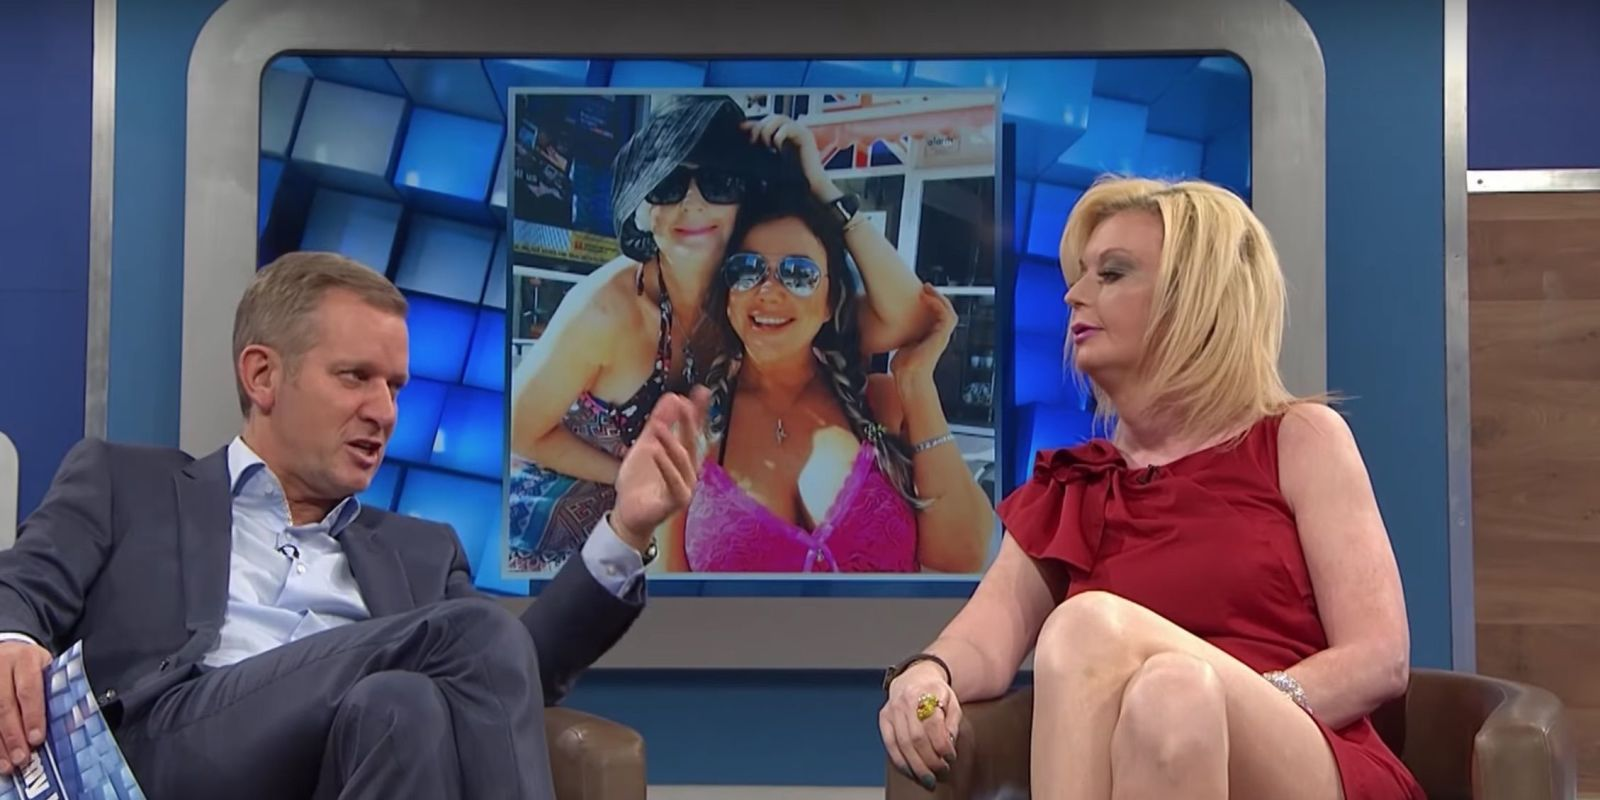 Big Brother's Lauren Harries and Lisa Appleton row on The Jeremy Kyle Show after holiday in Benidorm